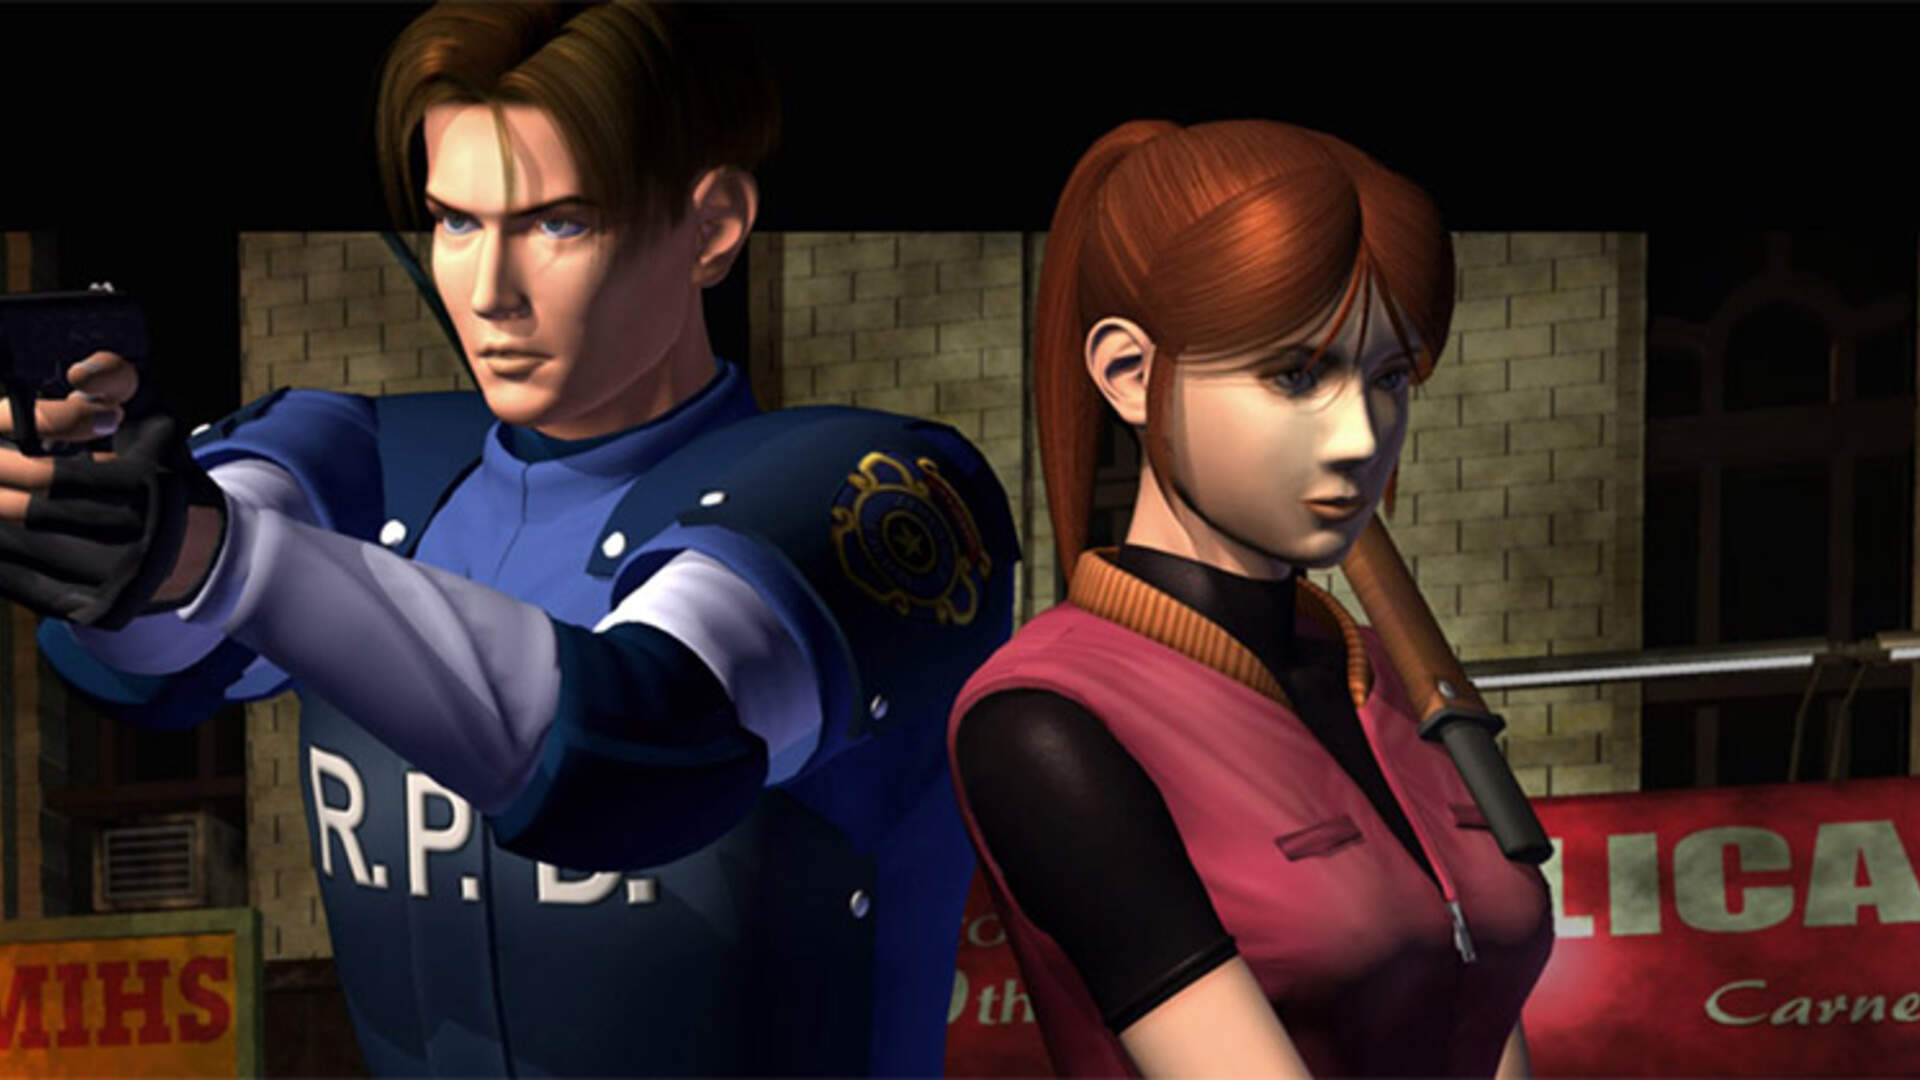 Capcom Finally Announces a Resident Evil 2 Remake